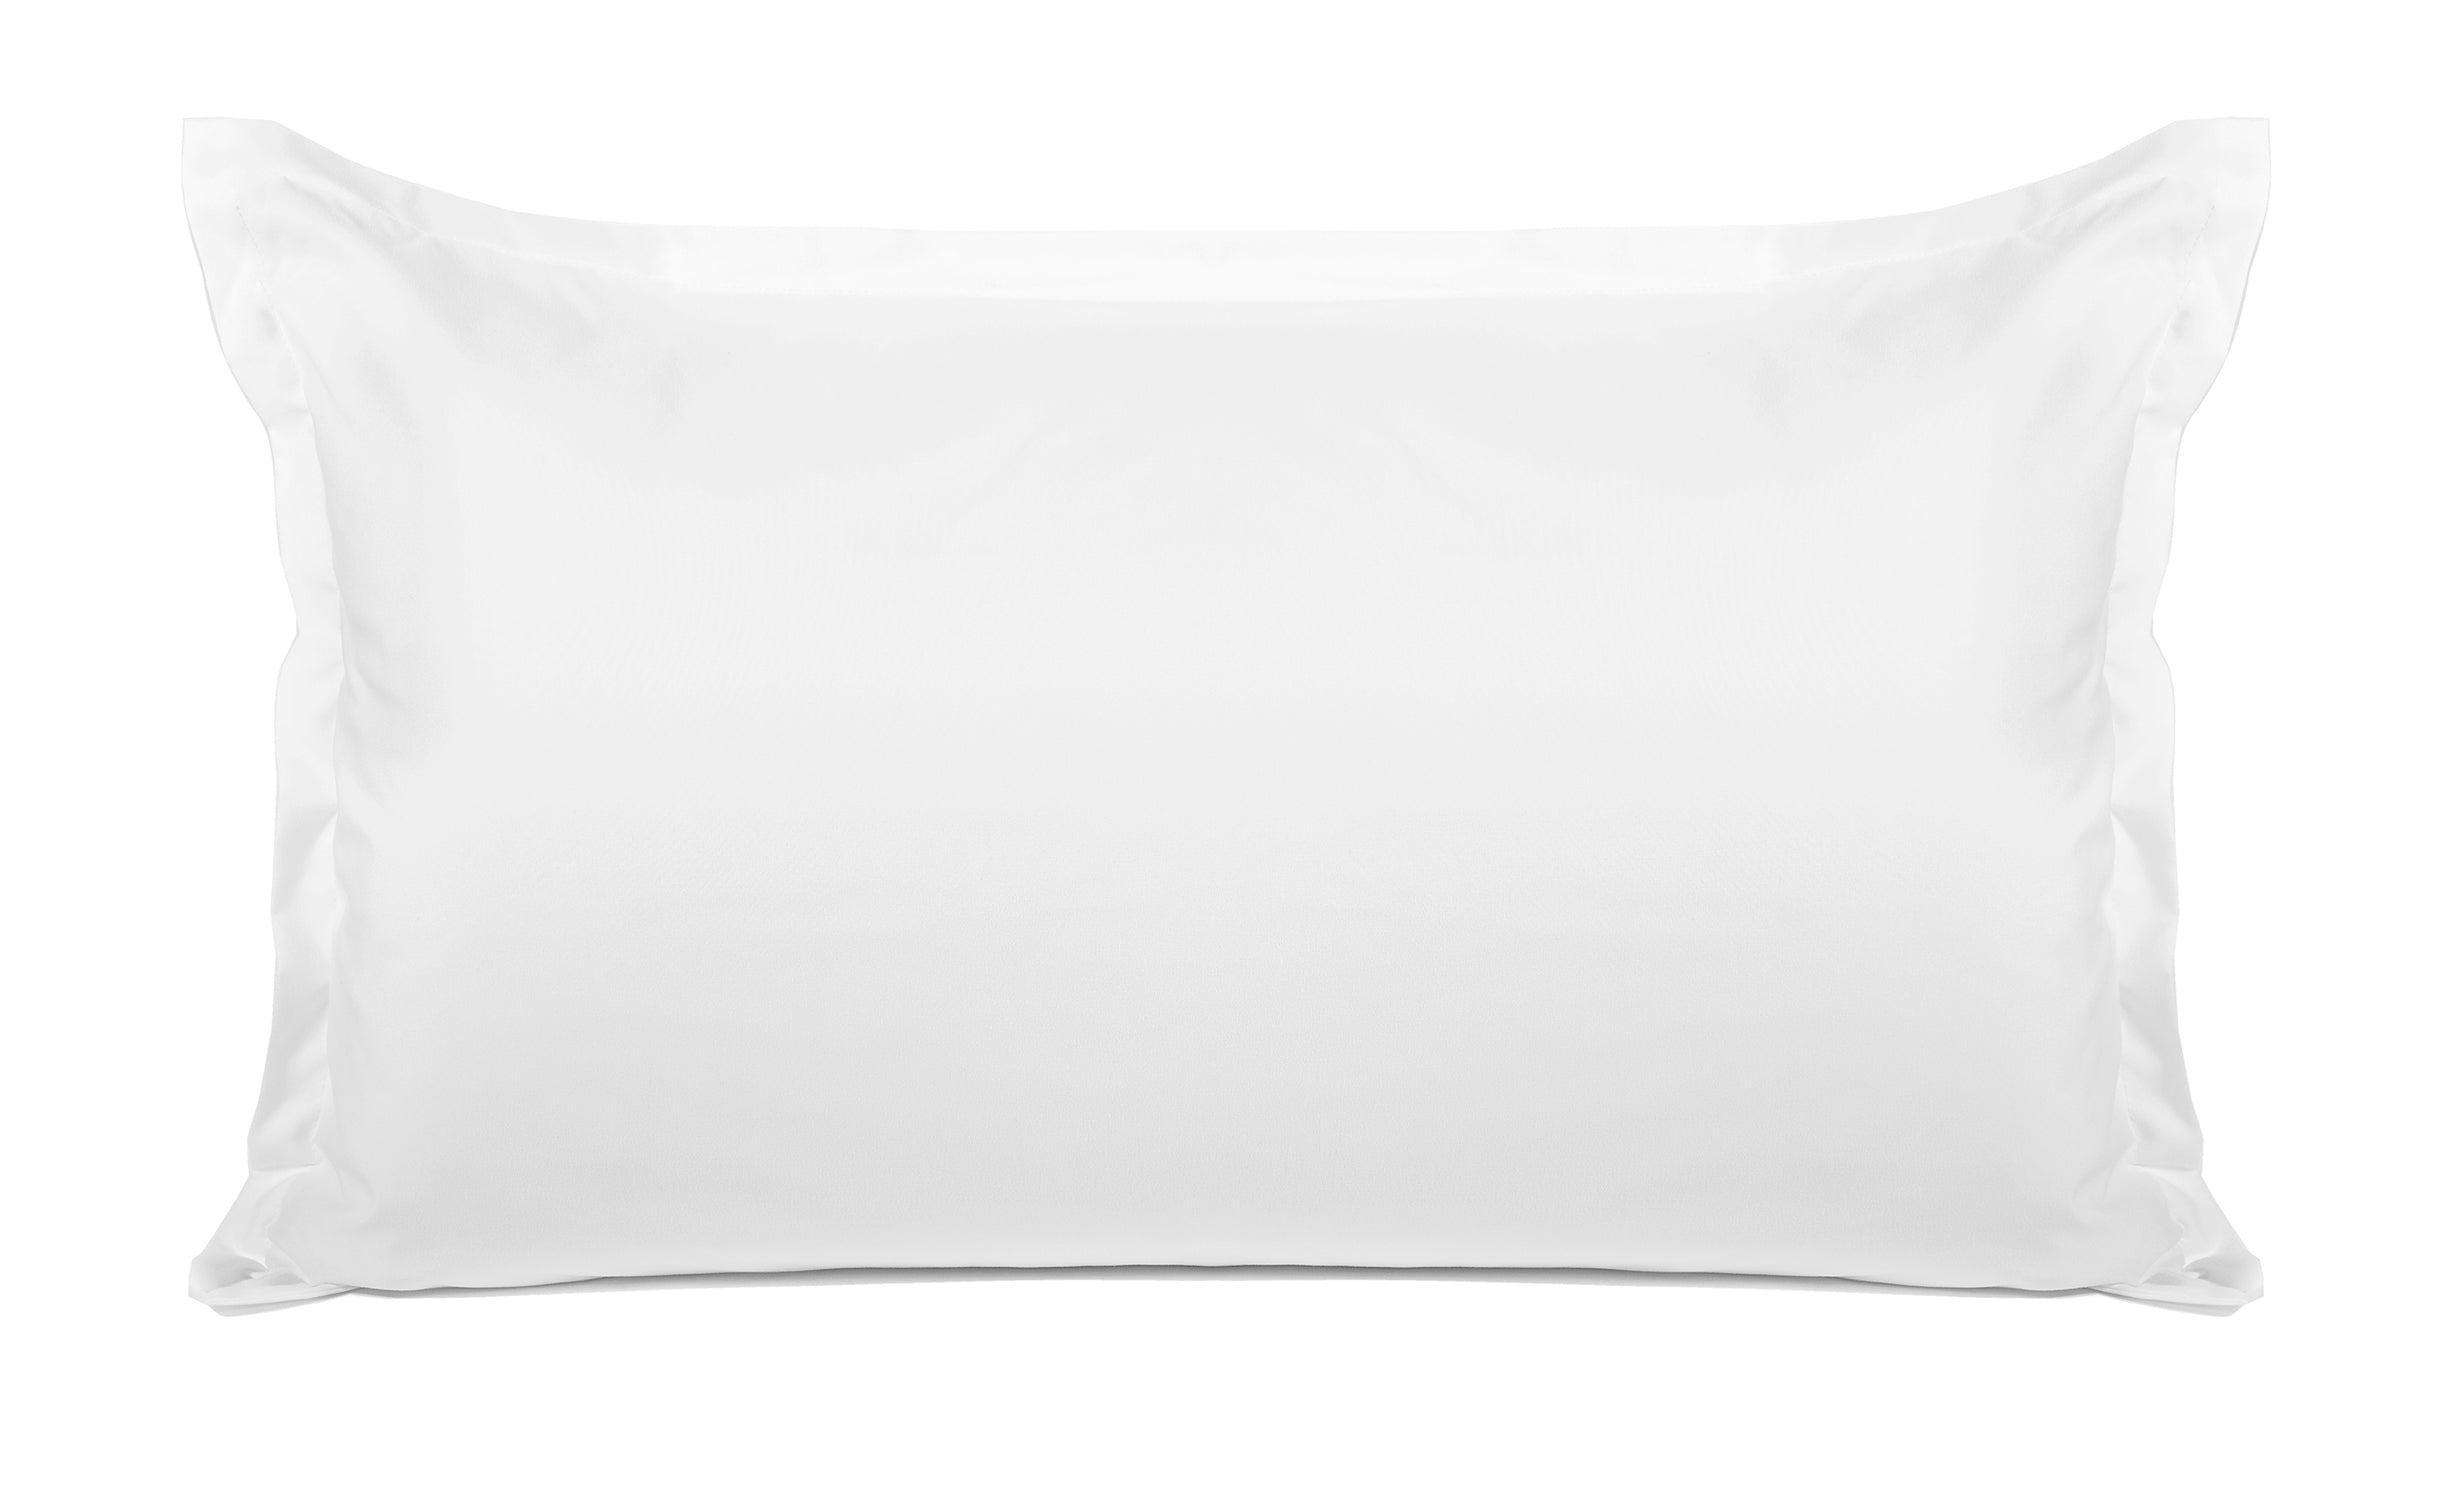 Personalized Name Pillow case Di Lewis, Personalized pillows